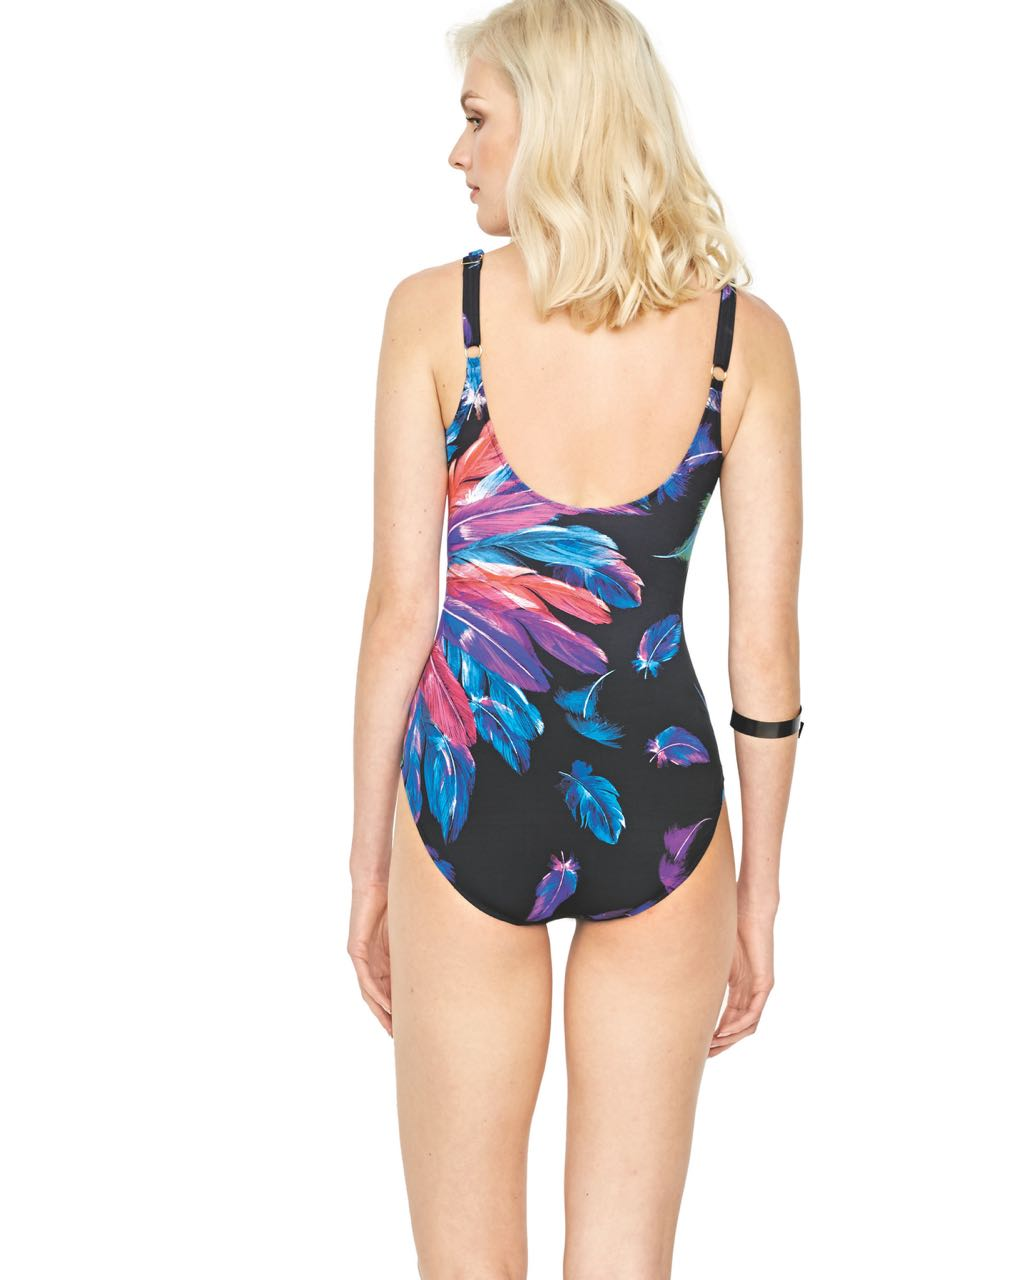 Gottex Swimsuit Reverie 18re173u I Buy Online Cruise 2018